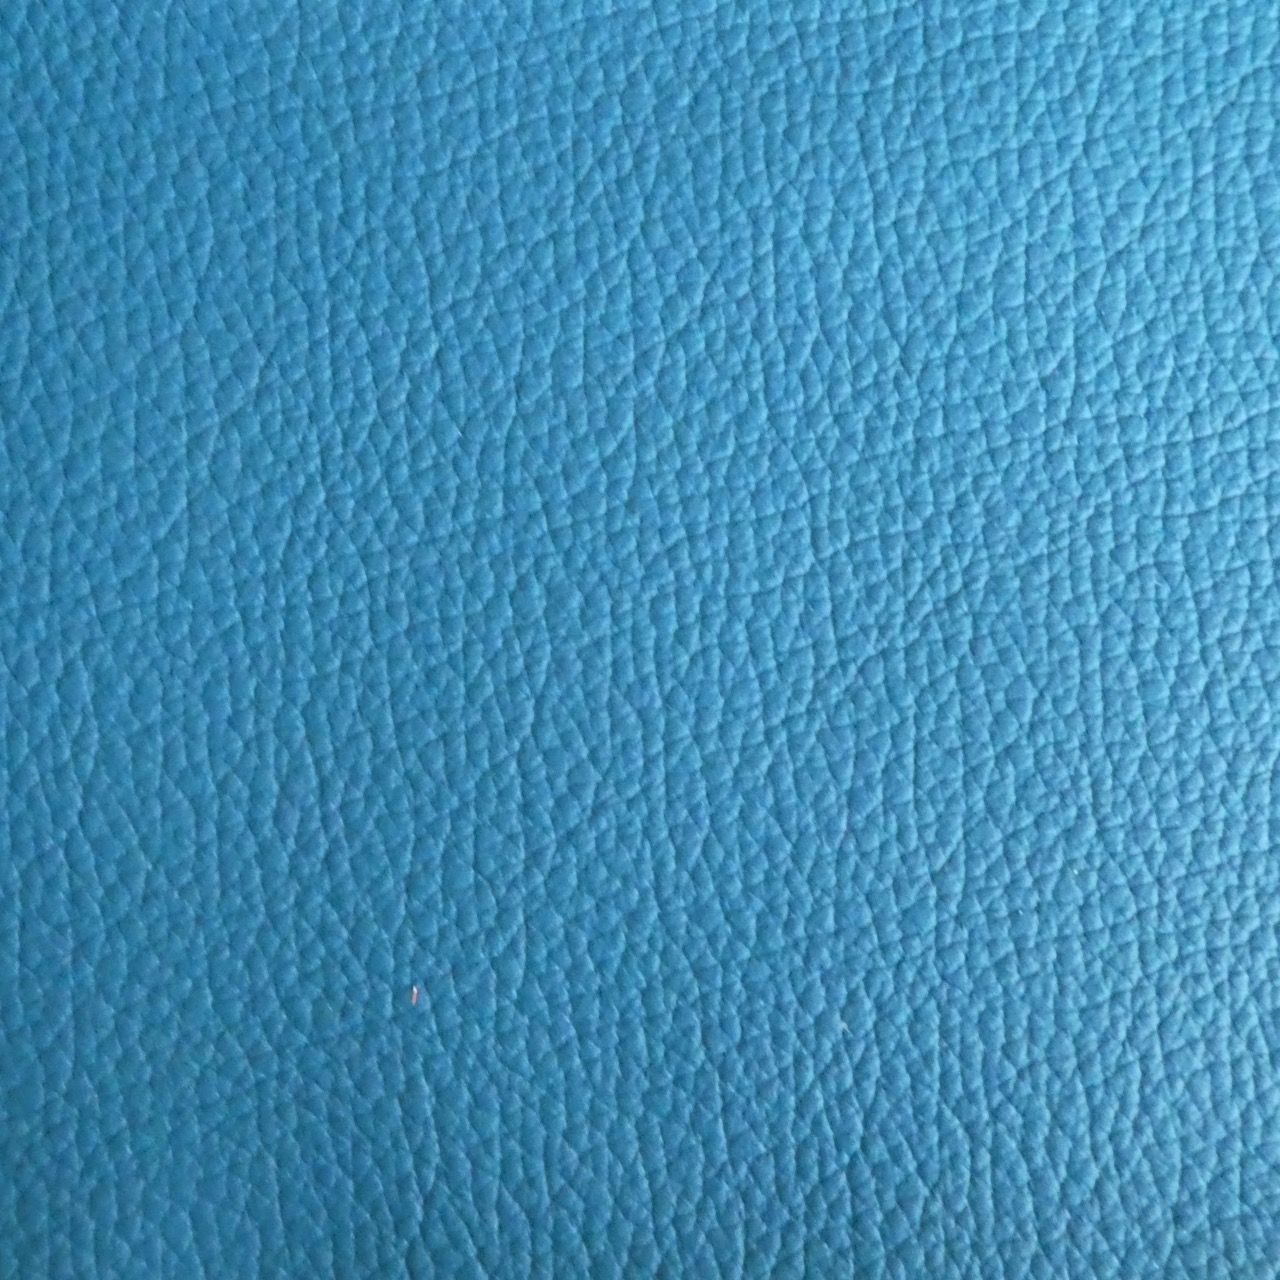 Hermes Turquoise - Leather